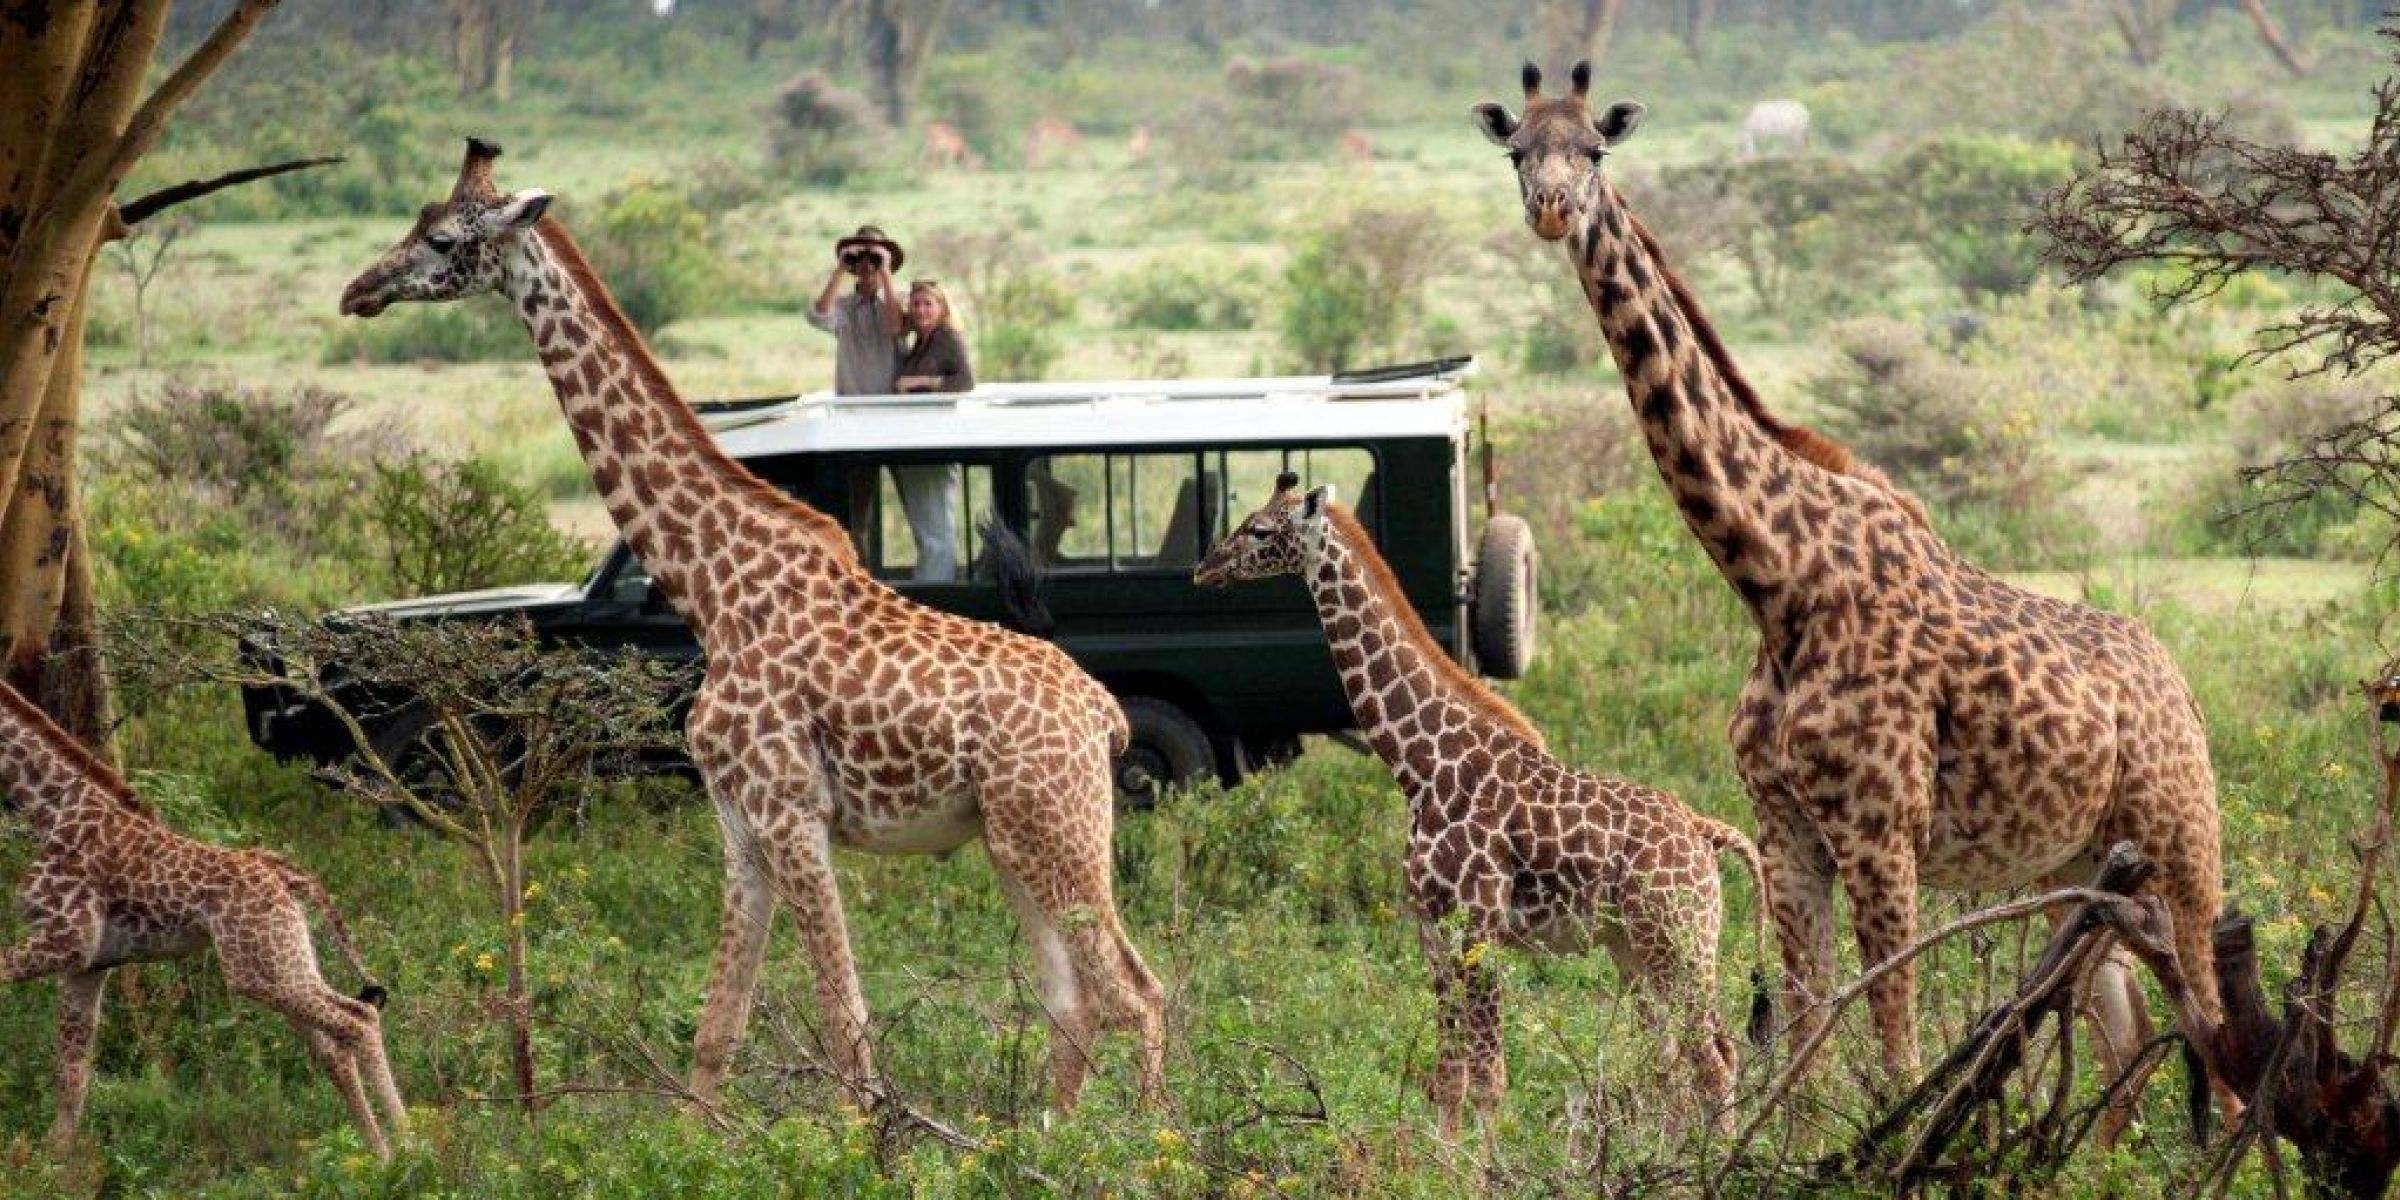 Guests game viewing